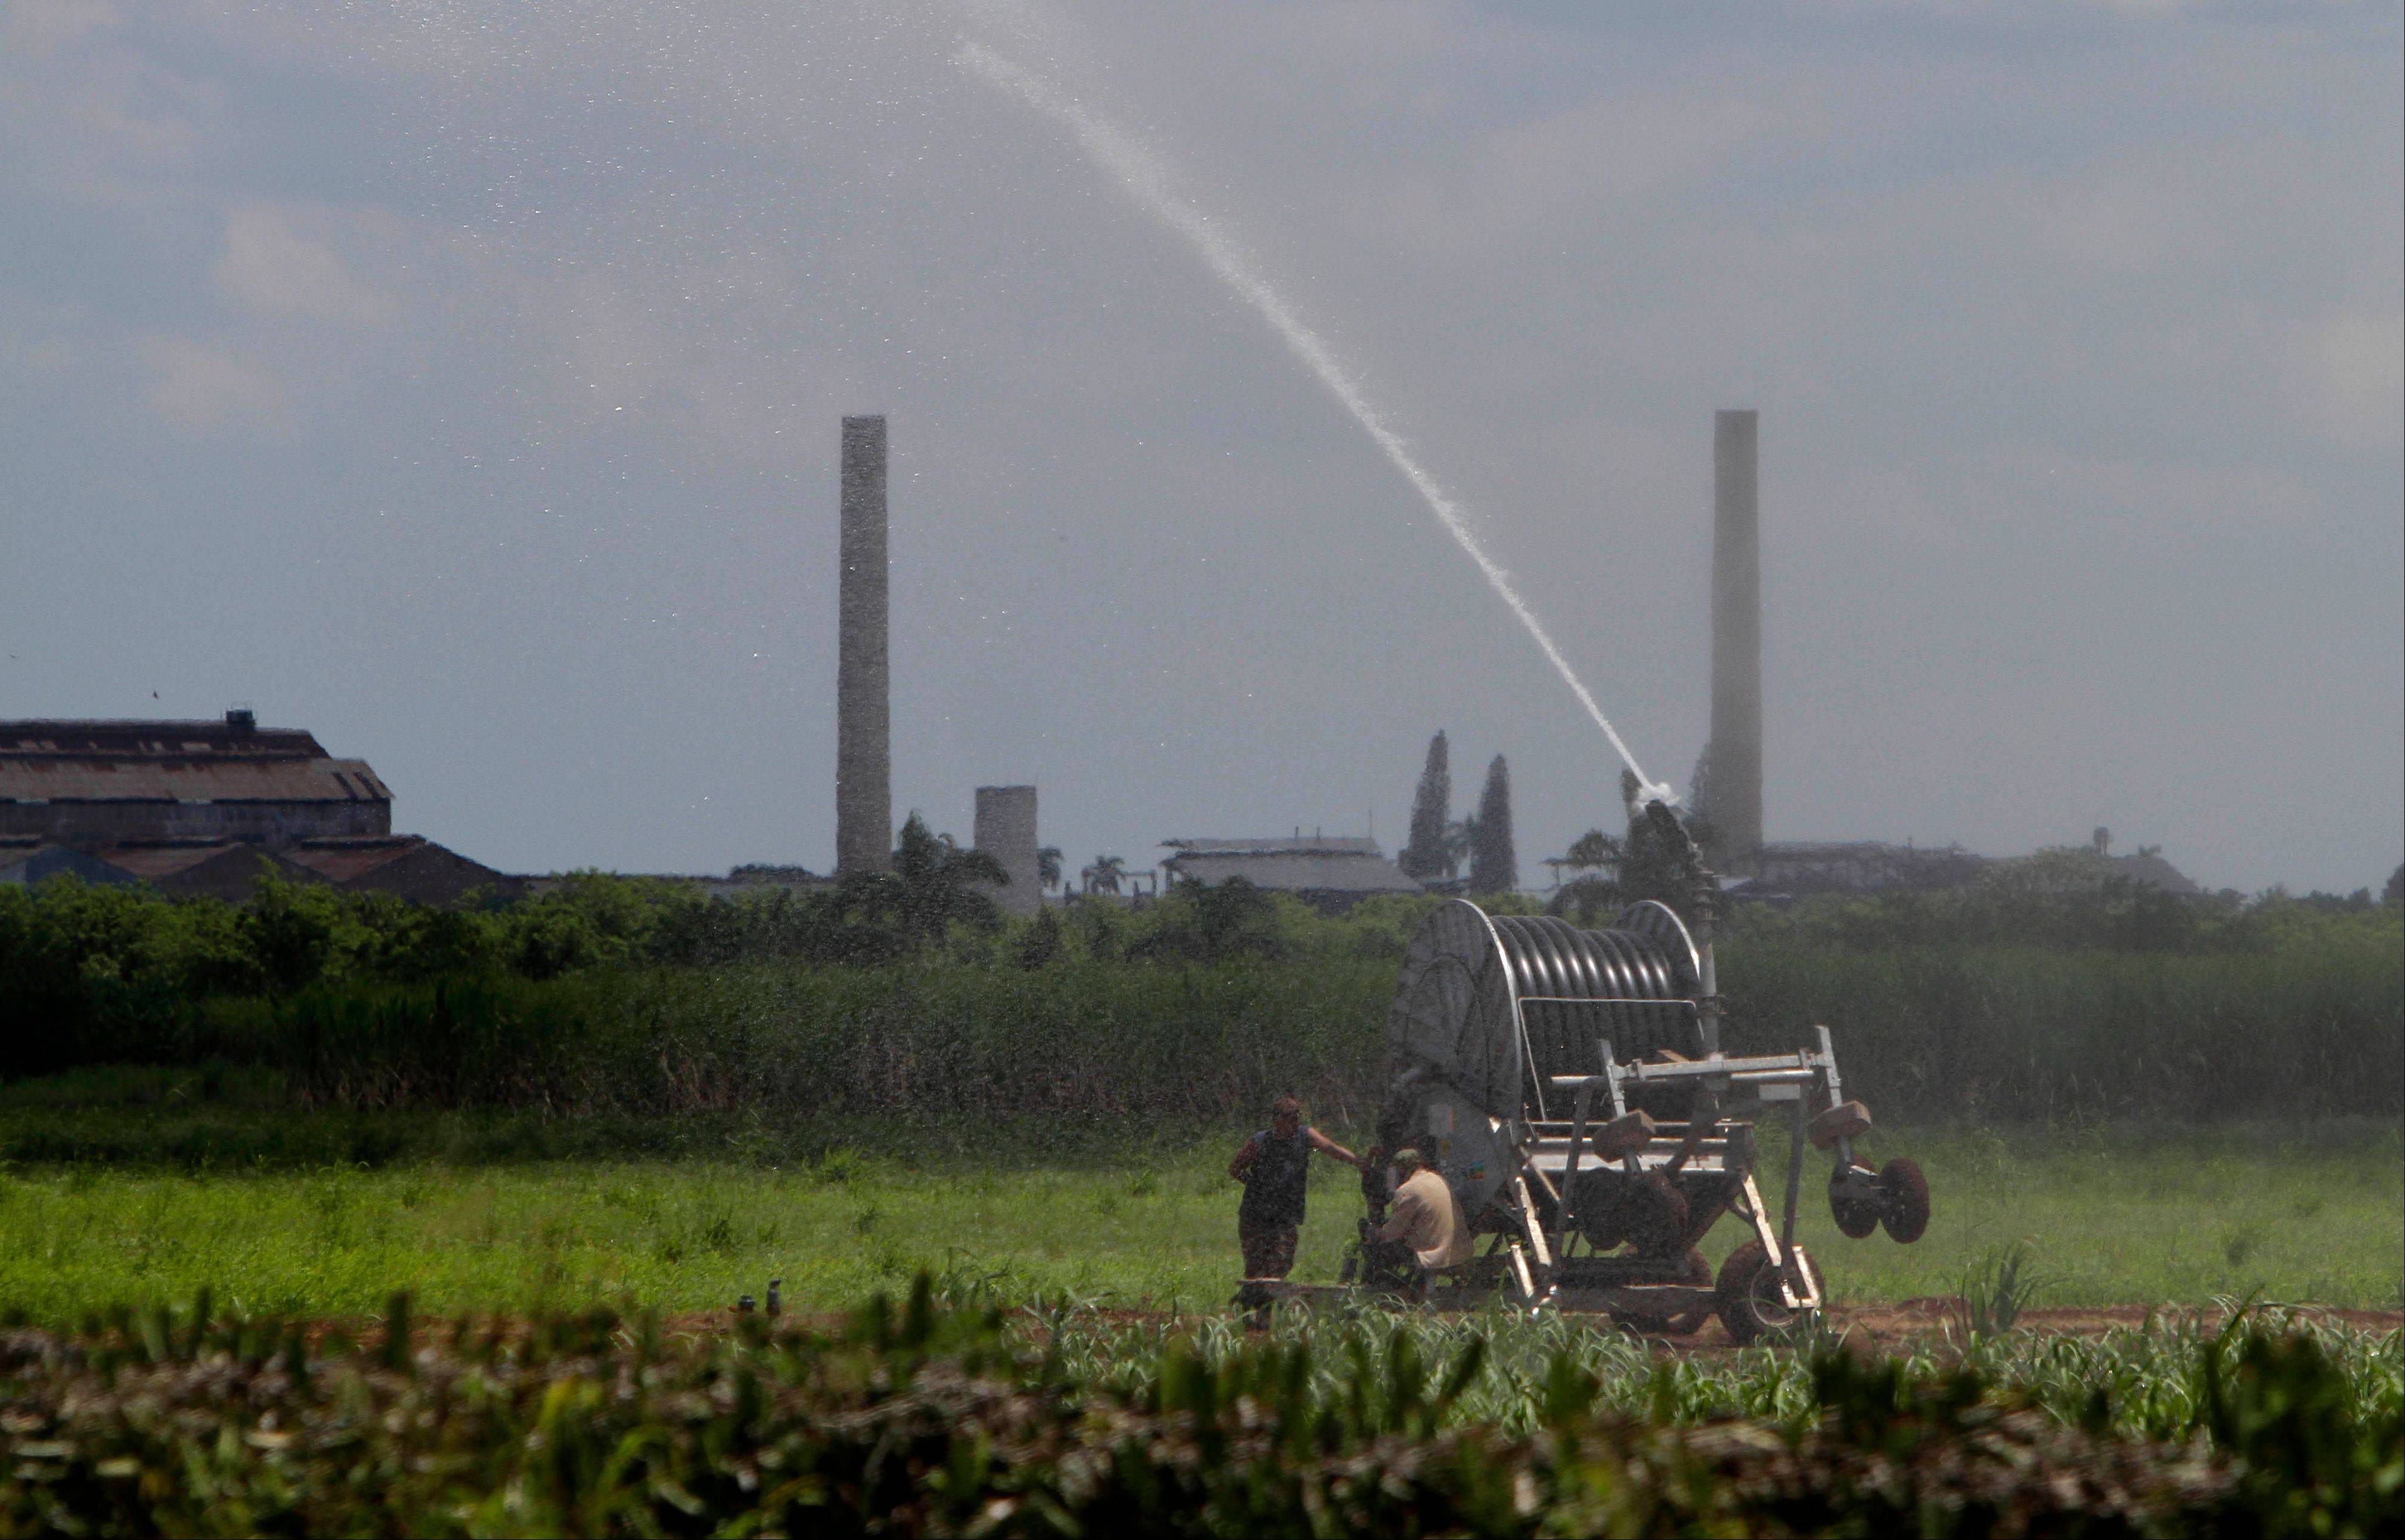 Workers irrigate a sugar cane field in Jaronu, Cuba. Just two years ago, Cuba's sugar industry was on its knees after the worst harvest in more than a century. Now Cuba's signature industry is showing signs of life. Hulking processing plants are coming back online, and the harvest is growing by double digits each year, a boon to rural towns like Jaronu.